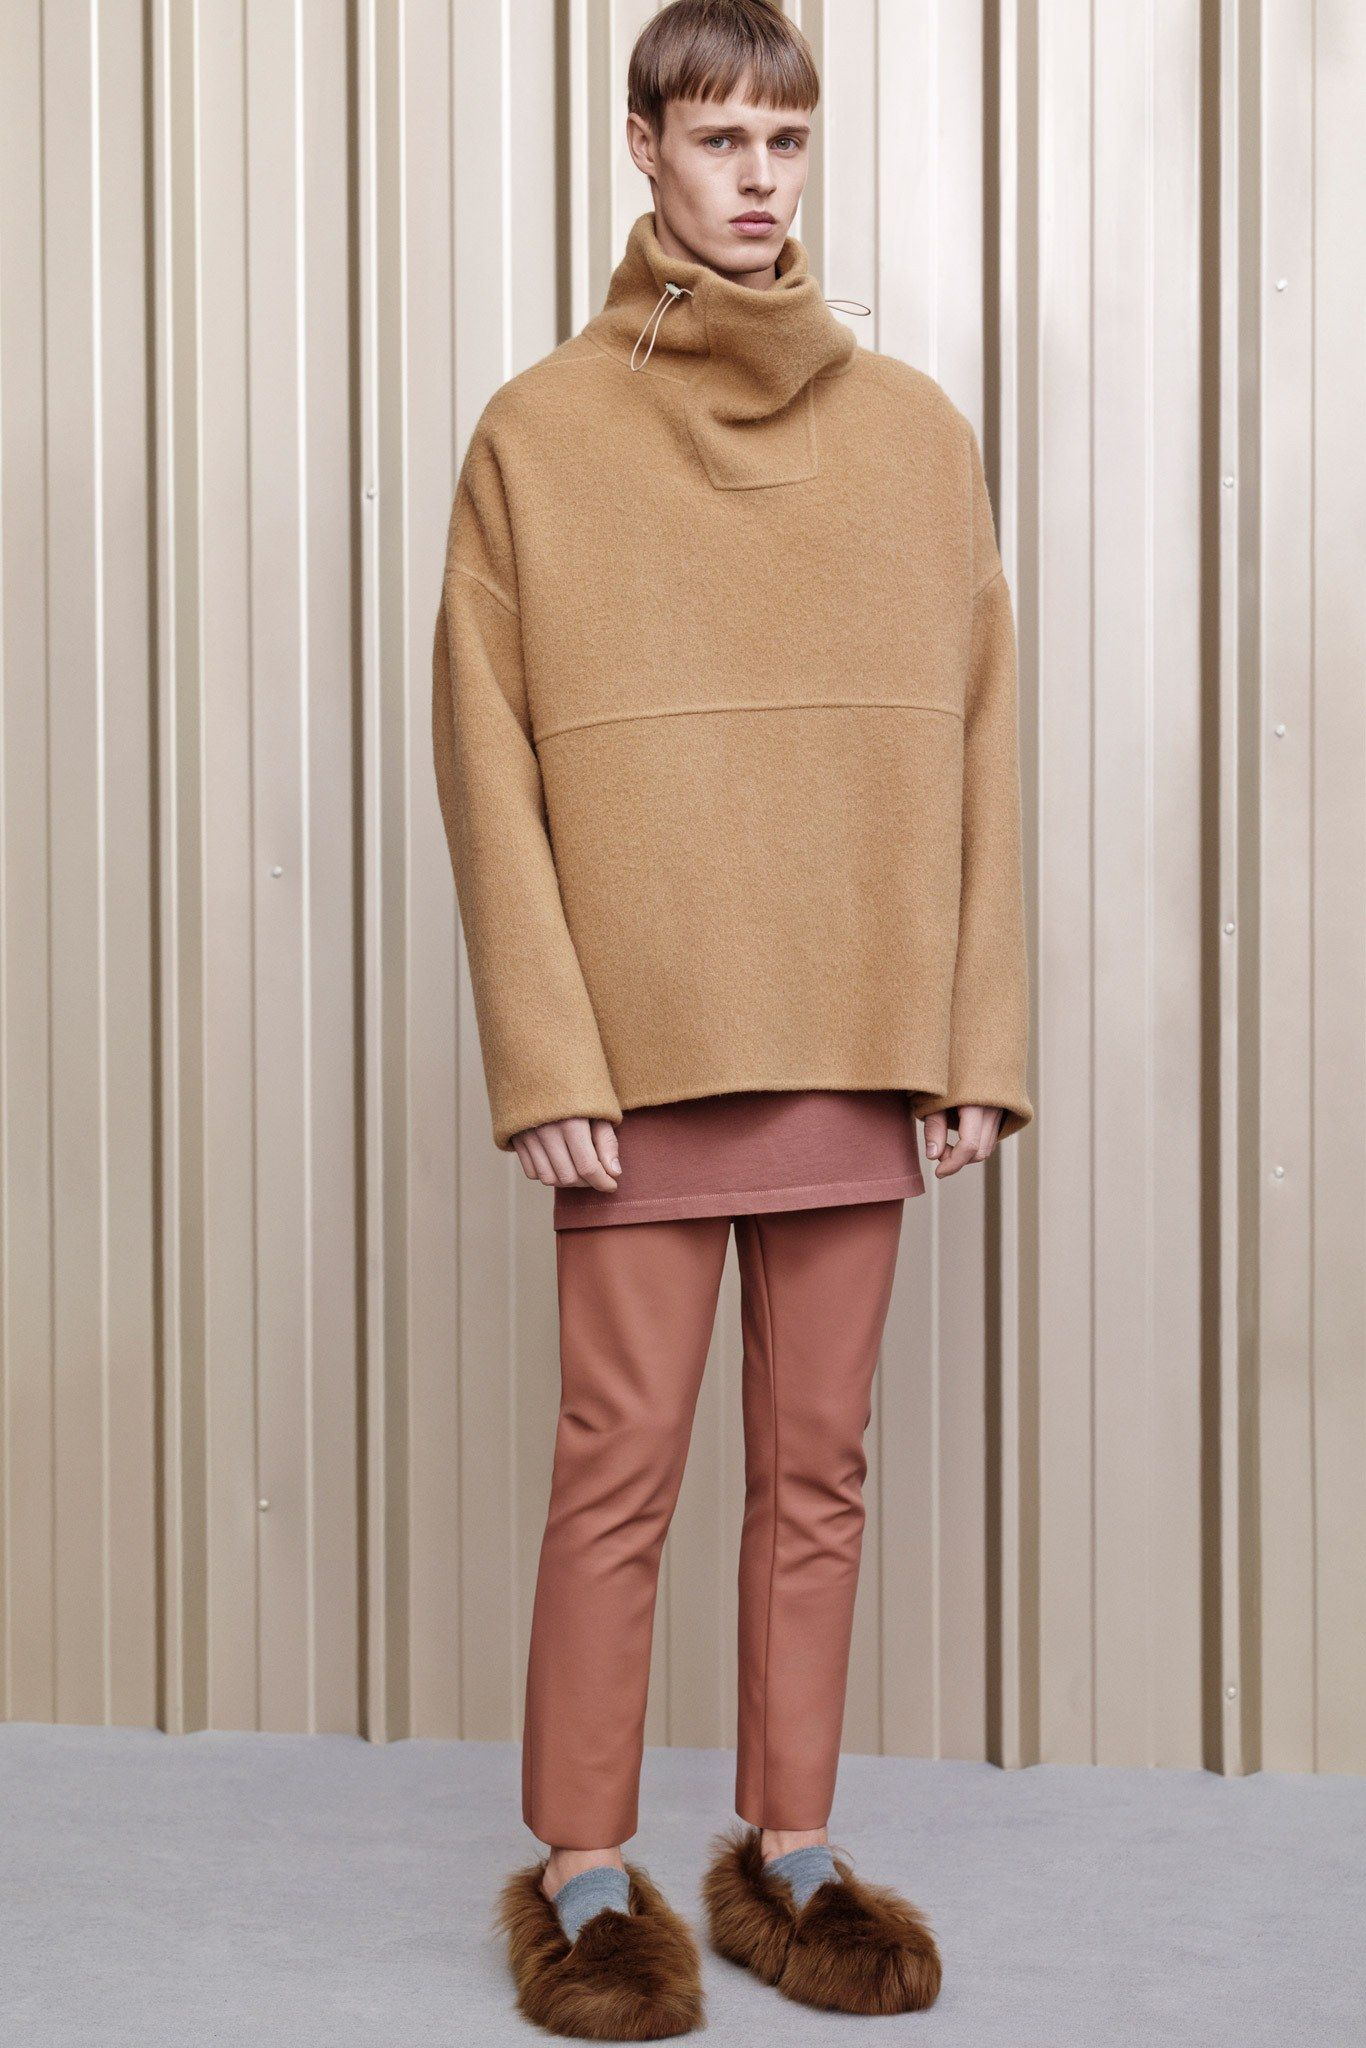 Acne Studios Fall 2014 Menswear Fashion Show Fashion